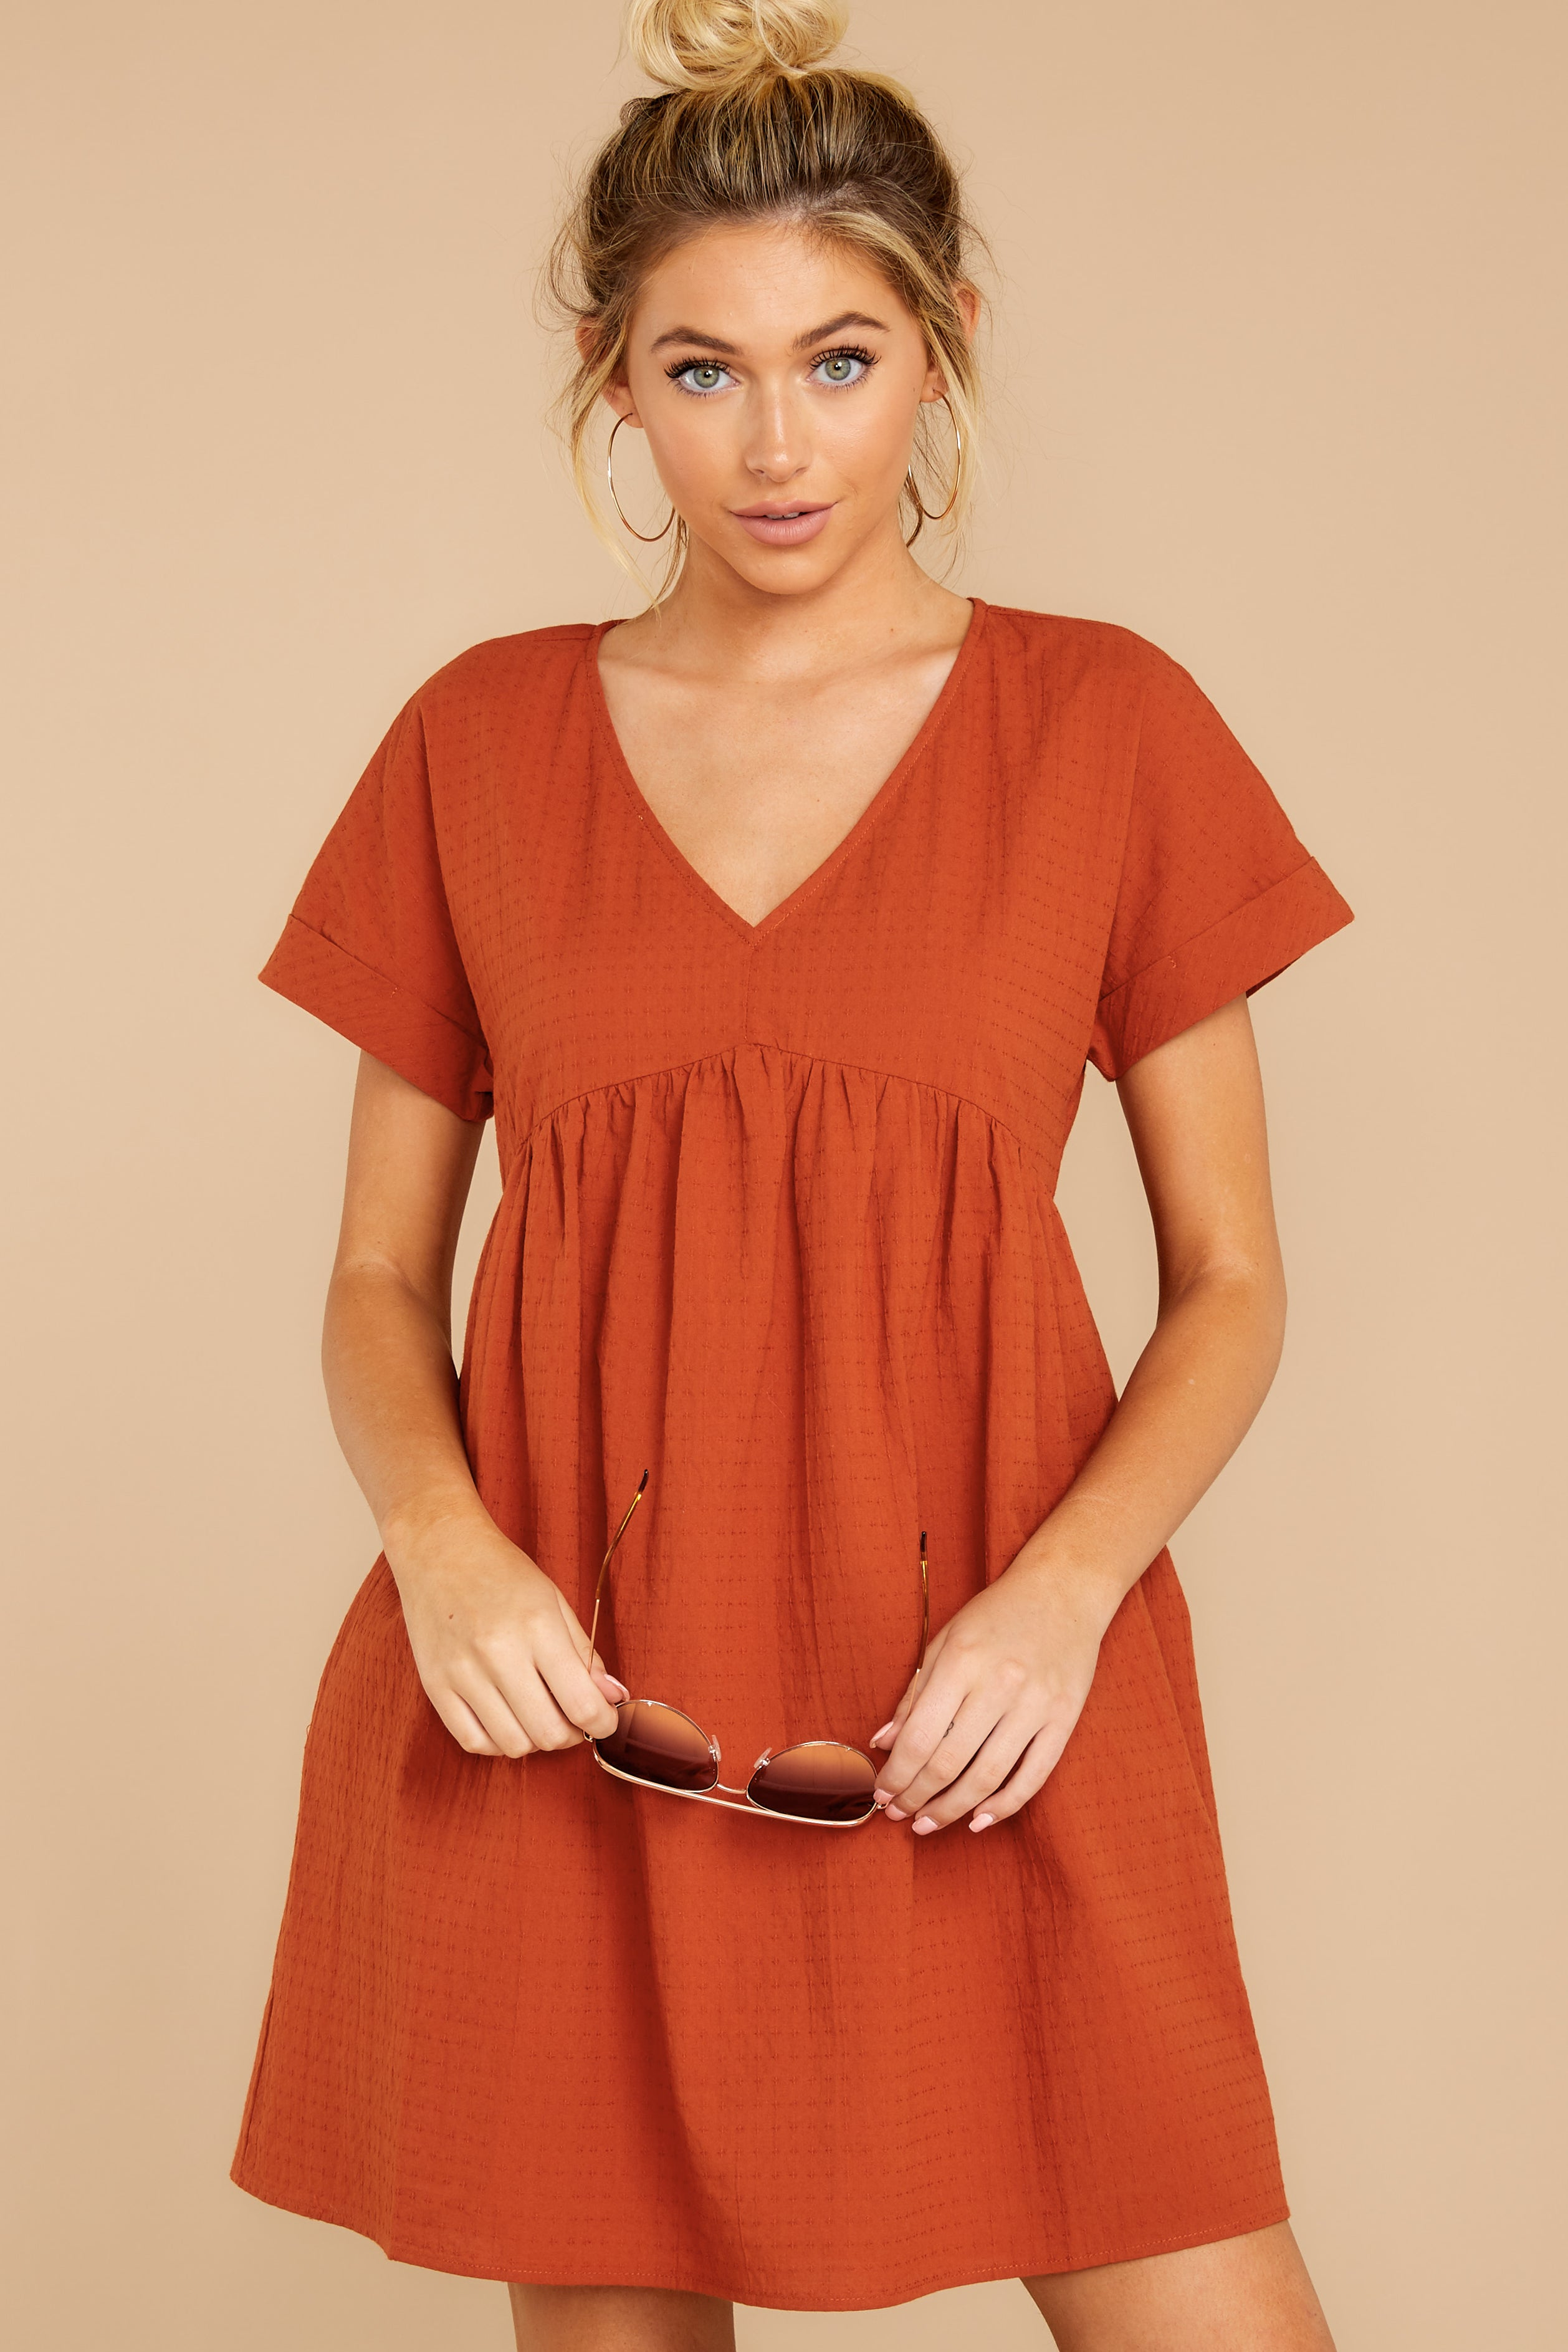 6 From Your Dreams Rust Orange Dress at reddressboutique.com